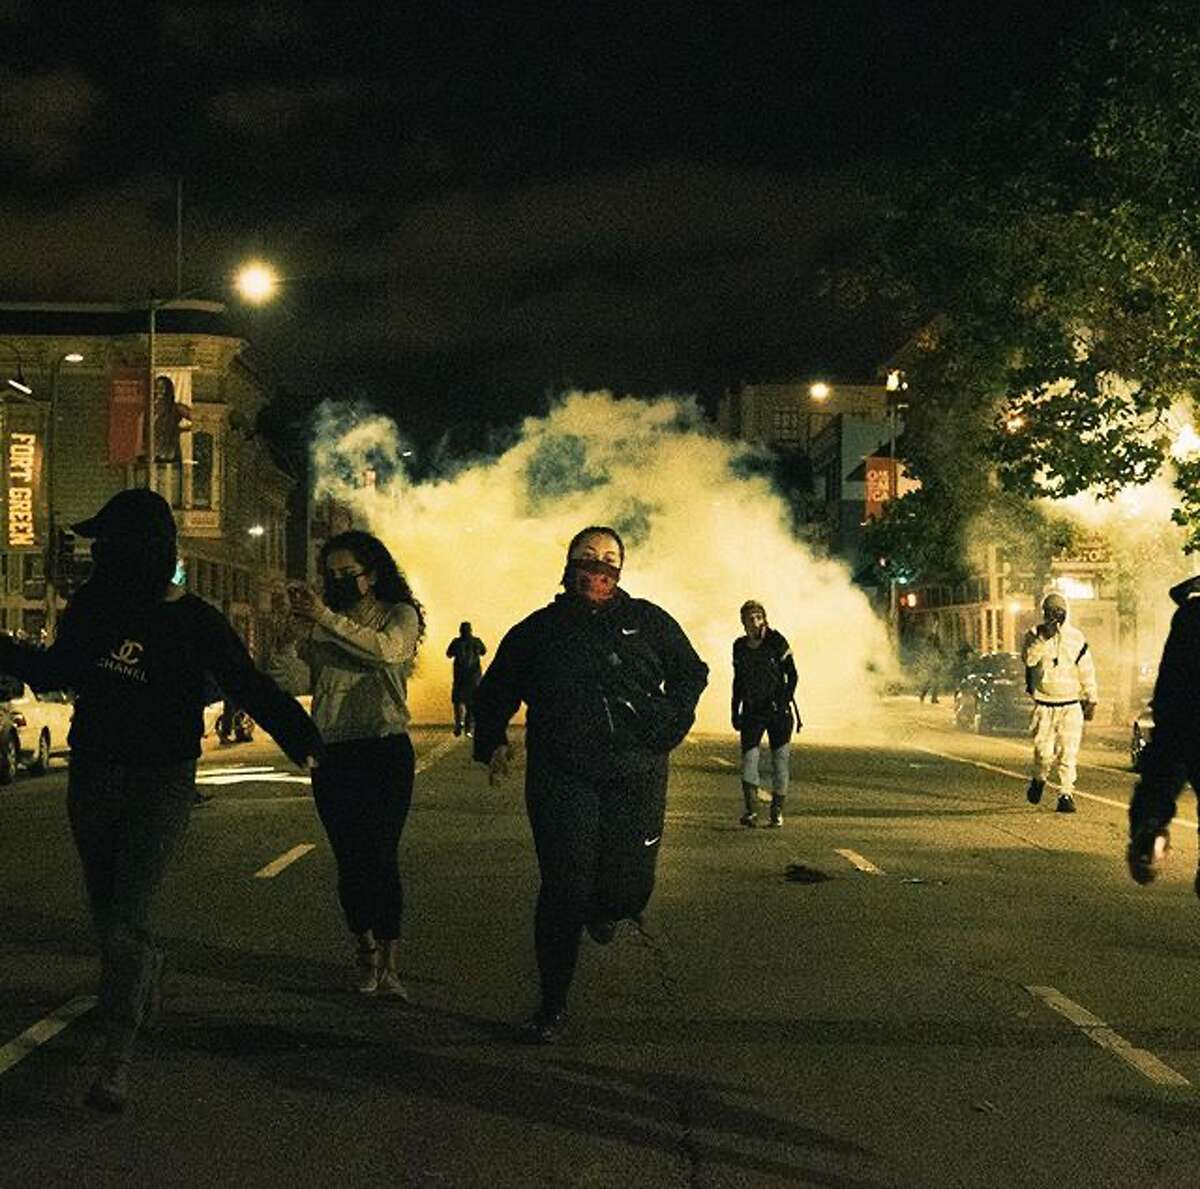 Protesters run from tear gas in Oakland. (@itsnickmar)